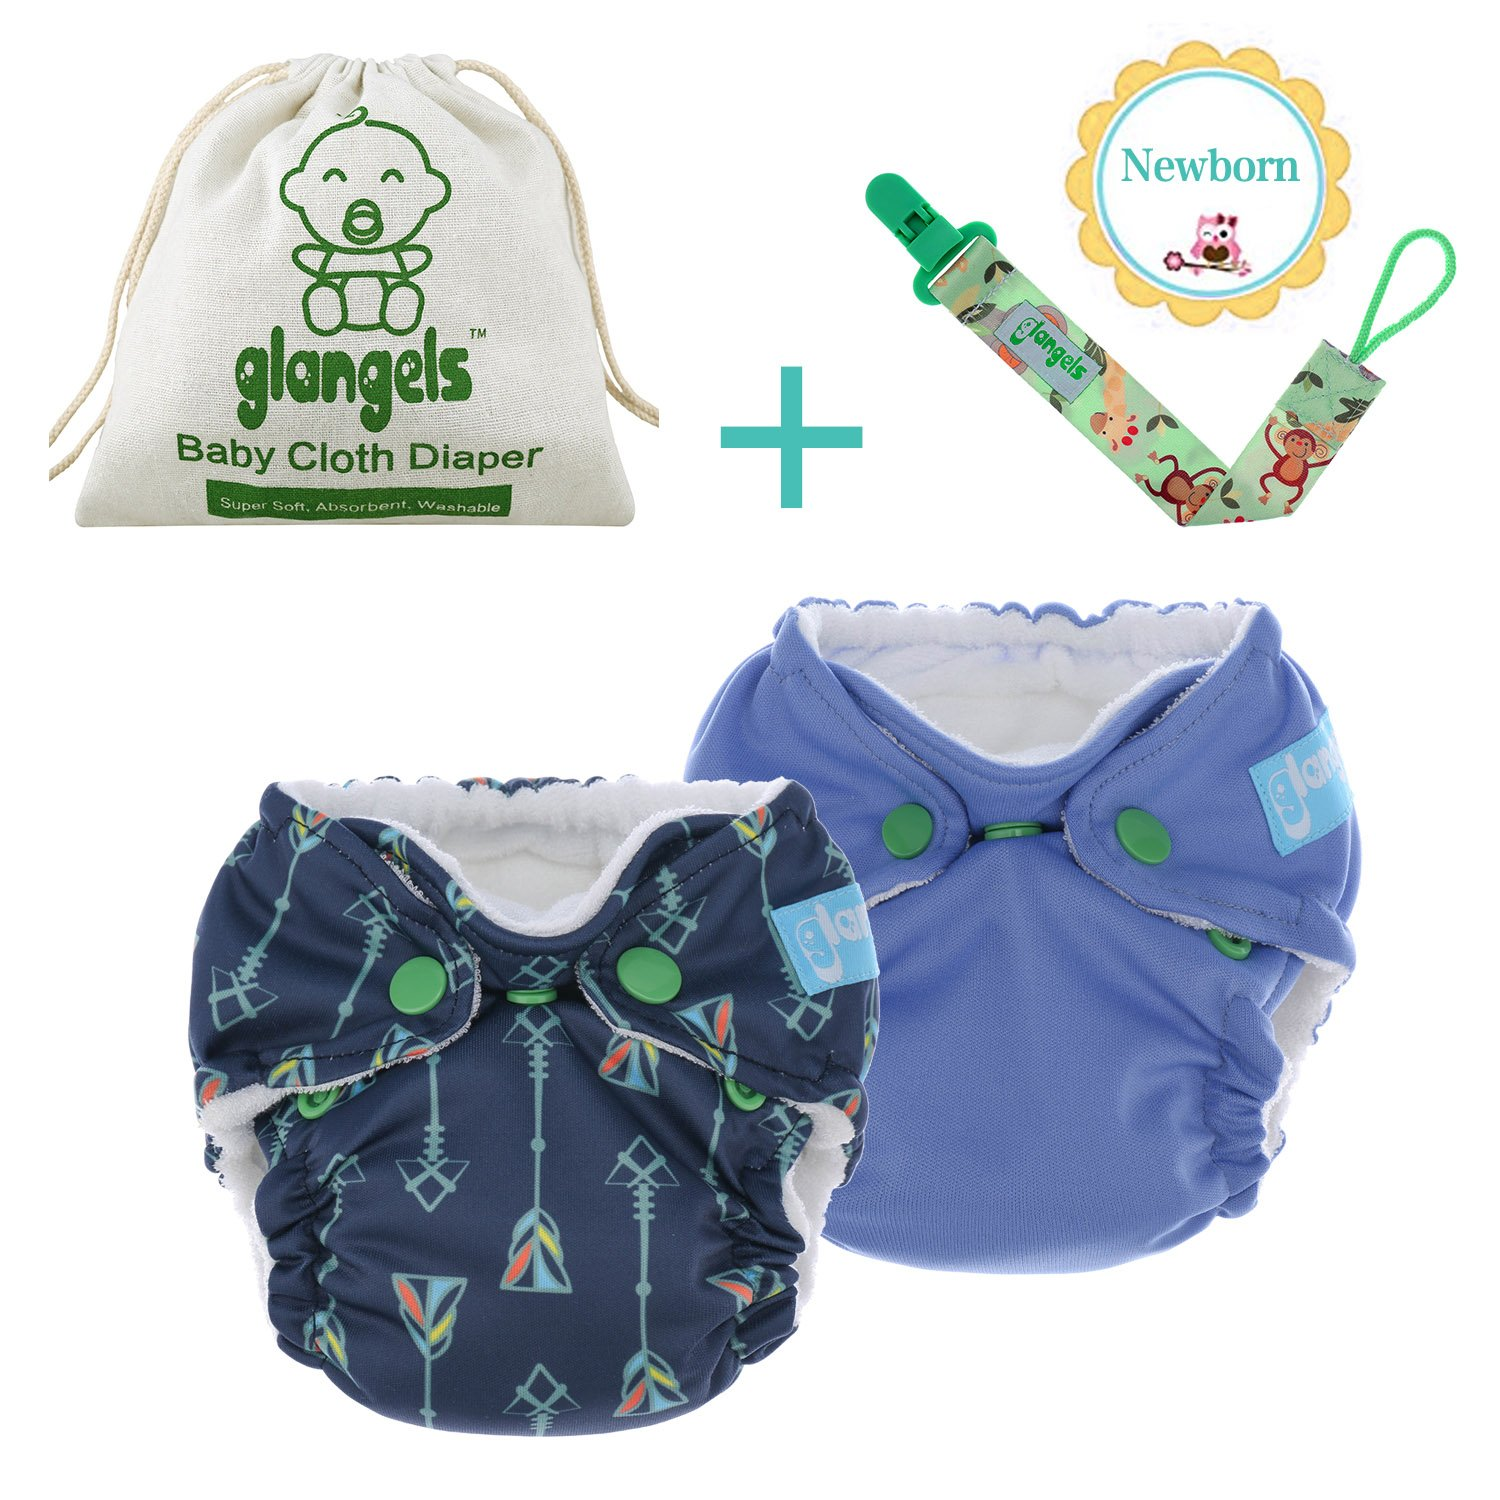 2 PCs Premium Organic Baby Reusable Cloth Diapers –For Newborn & Preemie–Breathable W/Waterproof Cover –Bonus Pacifier Clip –Perfect Baby Shower Gift (Arrow 2PCs) Glangels